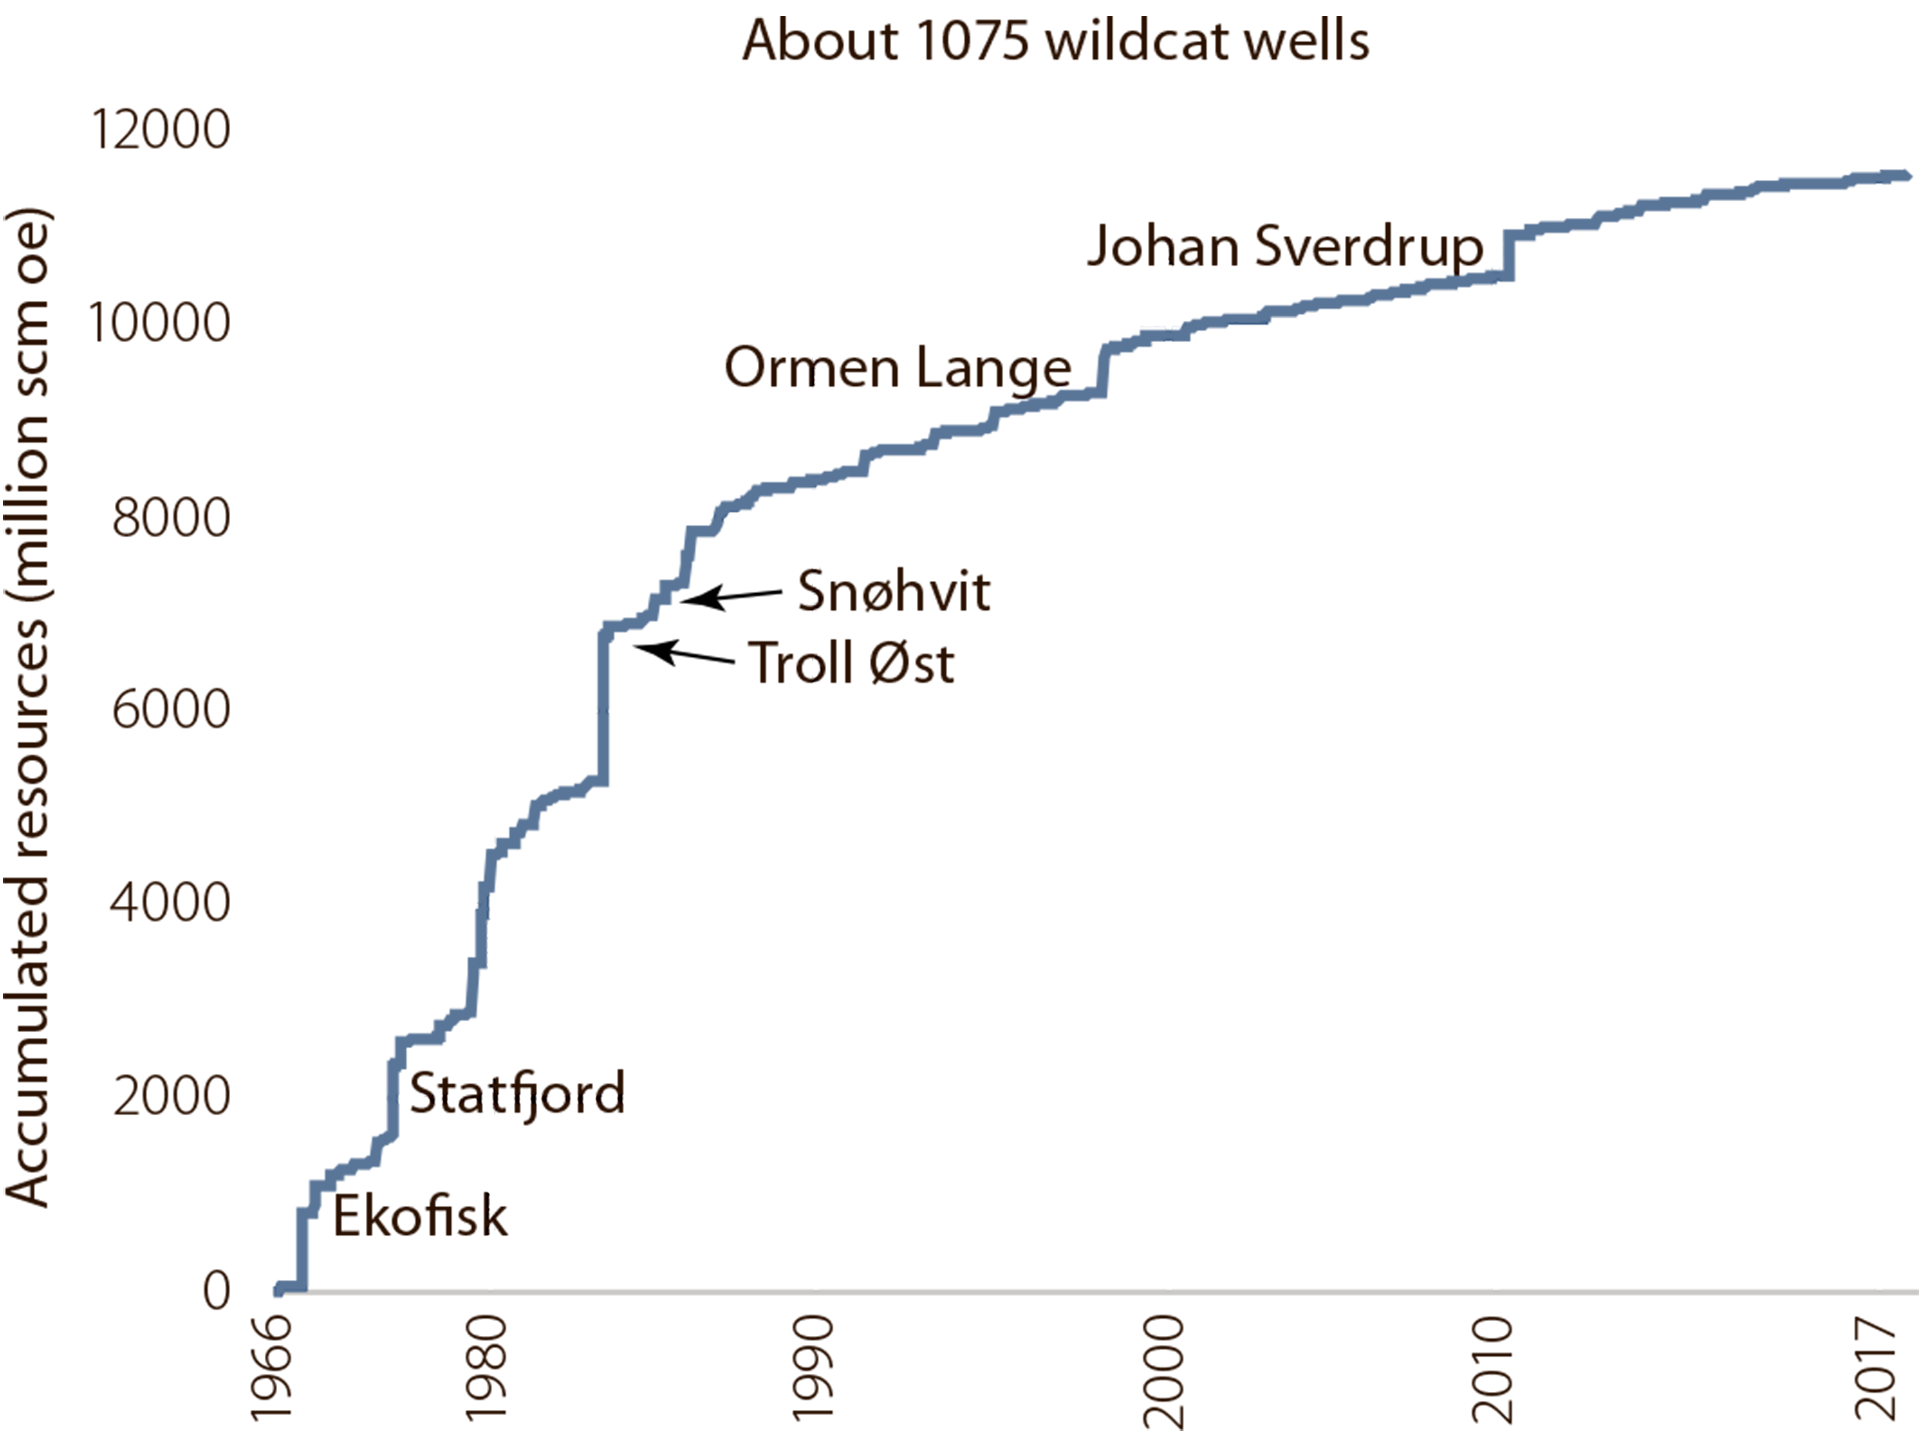 Figure 1.1 Resource growth on the NCS 1966-2017.